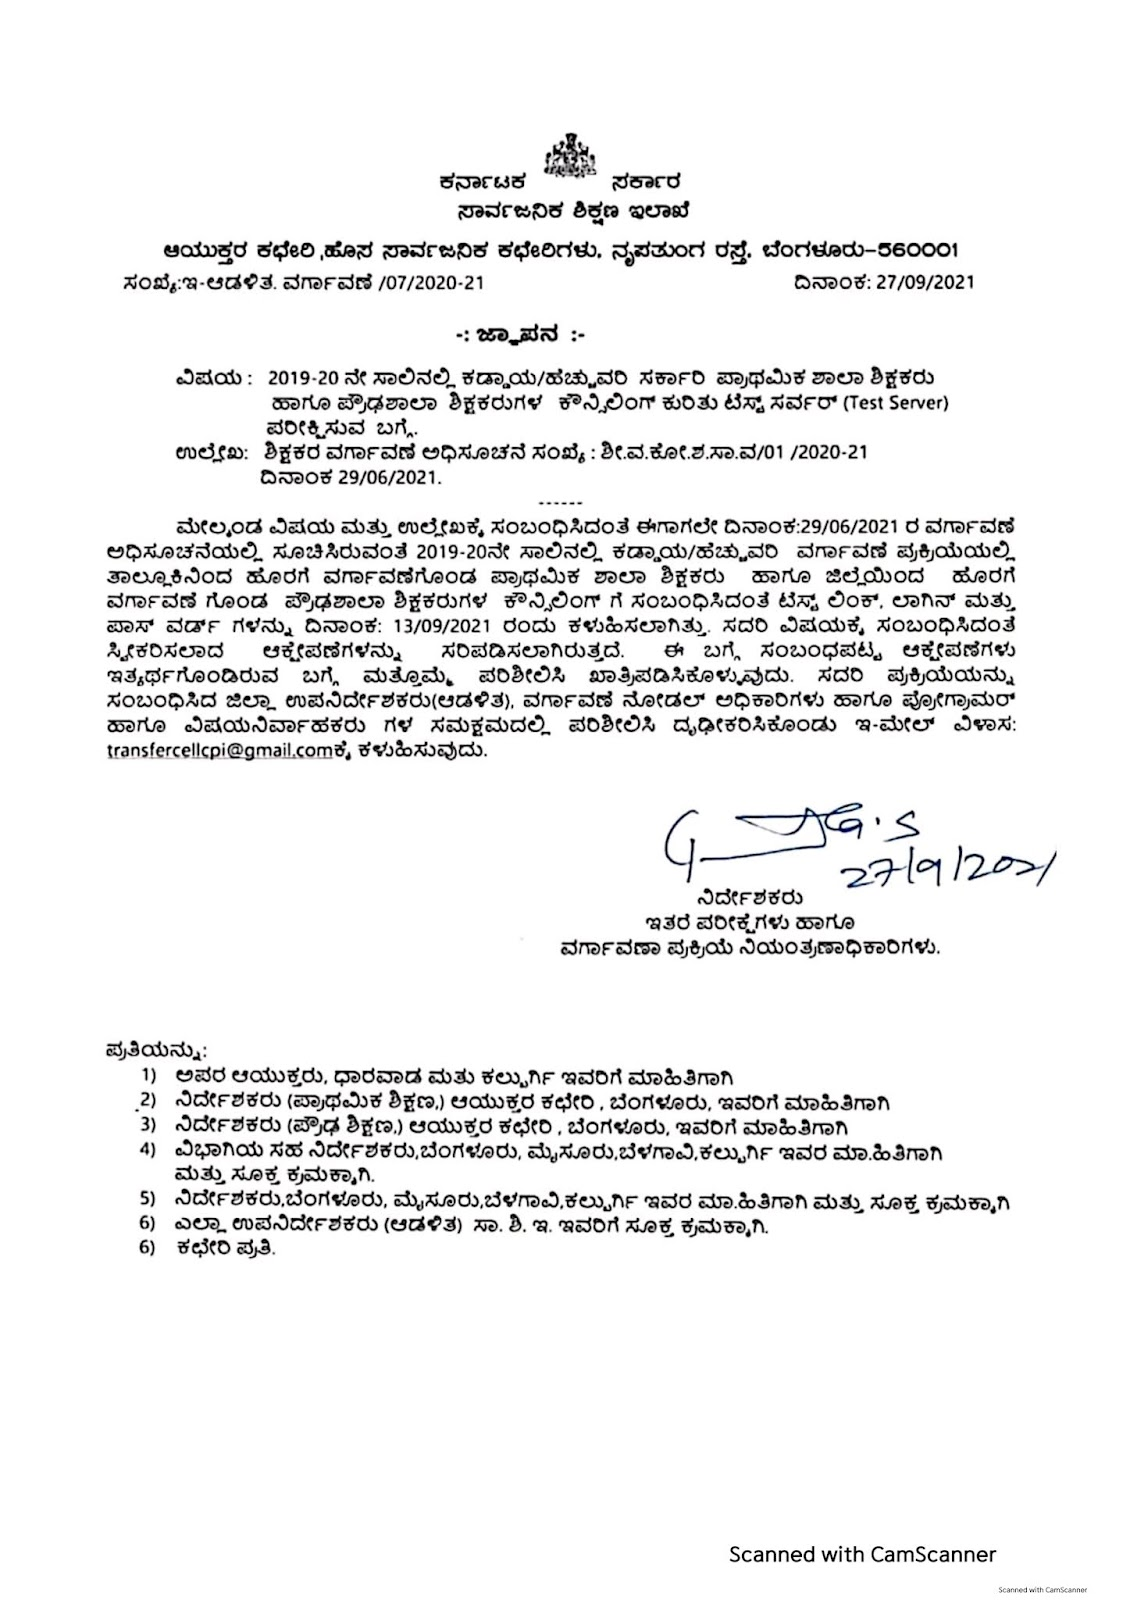 About Test Server Testing on Compulsory / Additional Government Primary School Teachers and High School Counseling